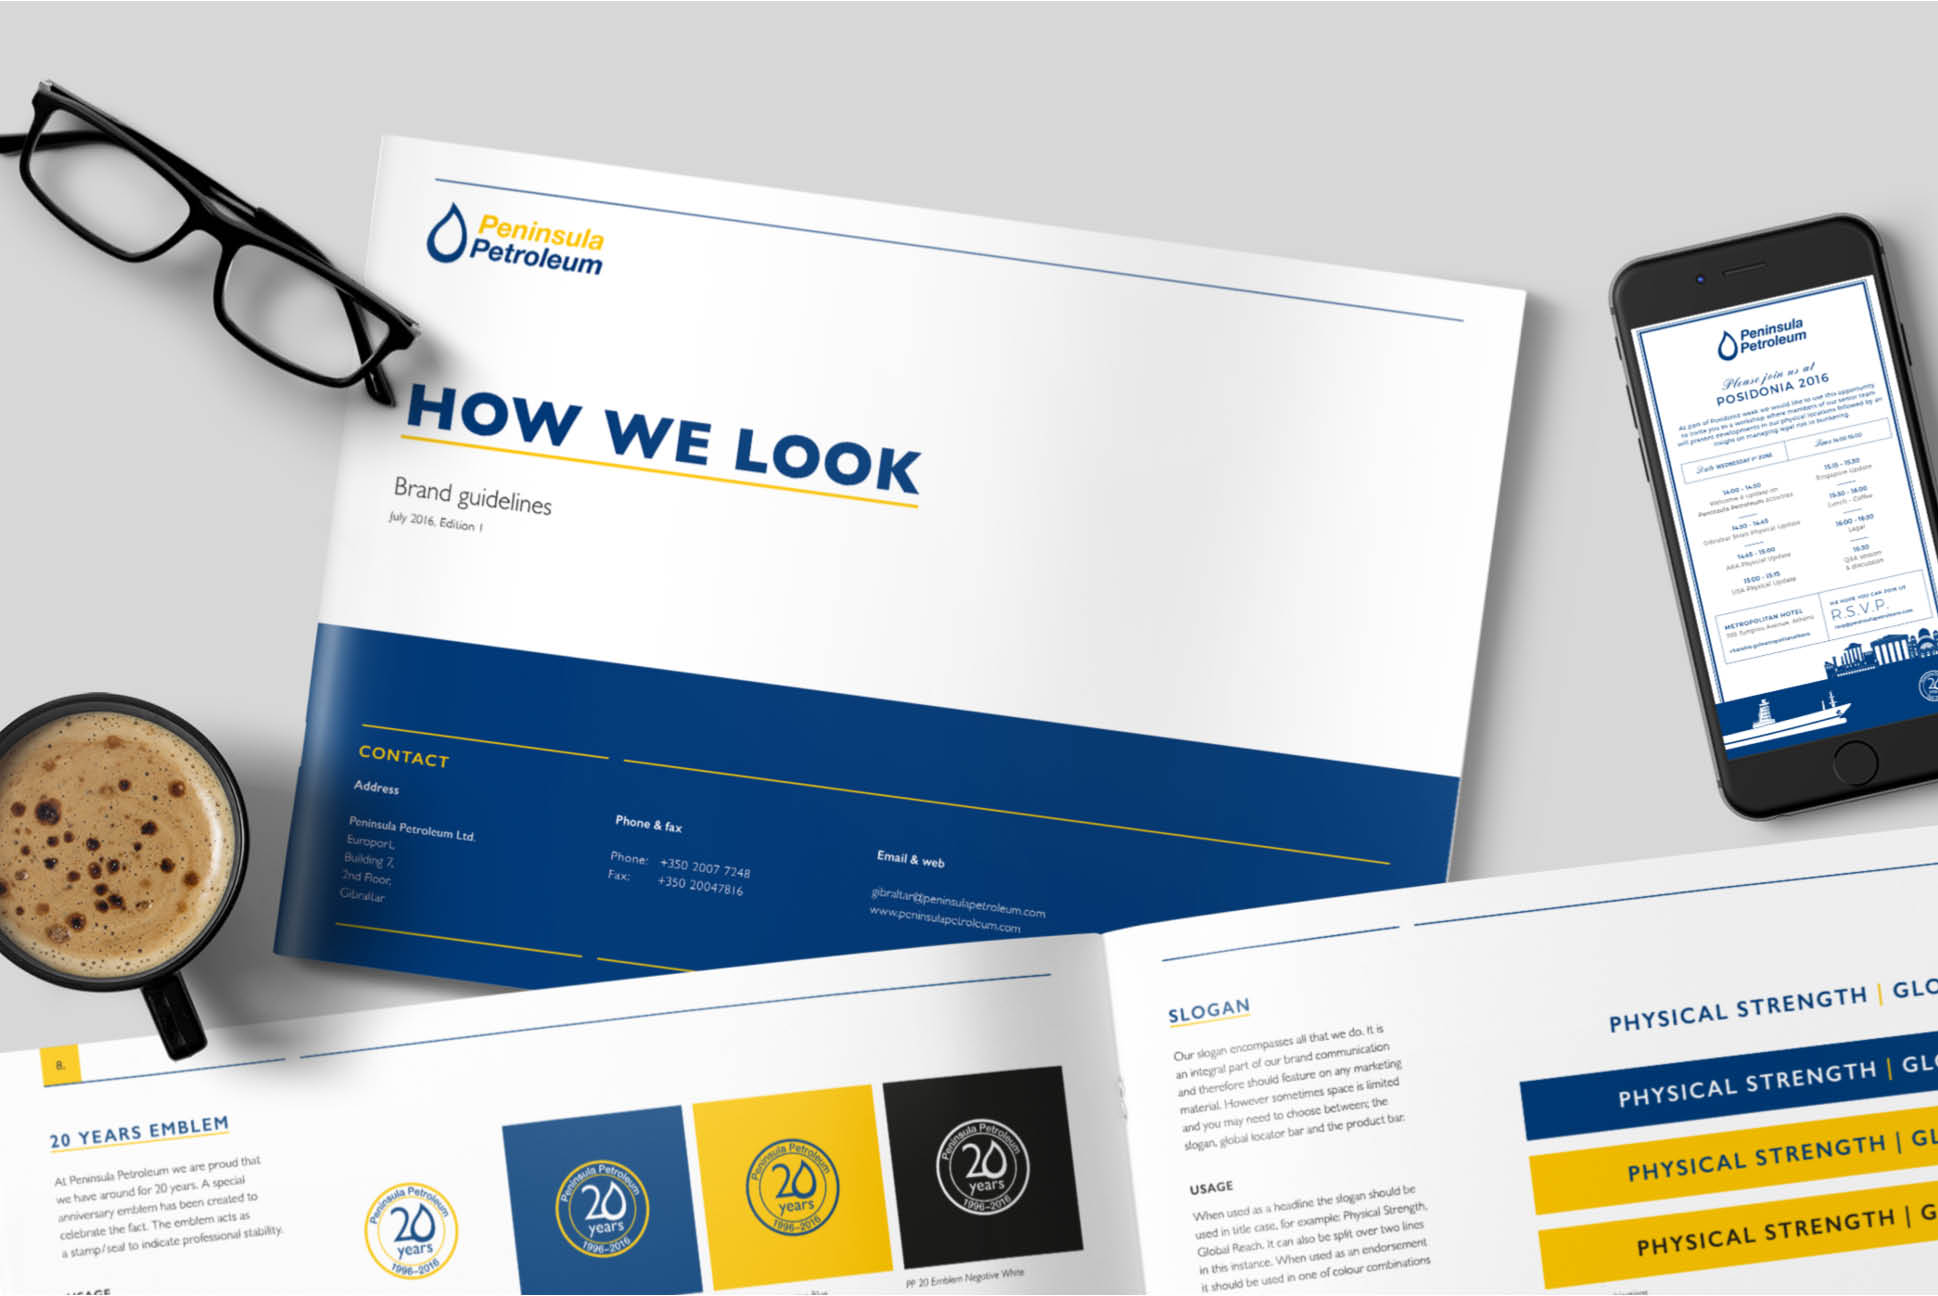 Peninsula Petroleum Brand Guidelines | Branding and Marketing Services - Independent Marketing | IM London